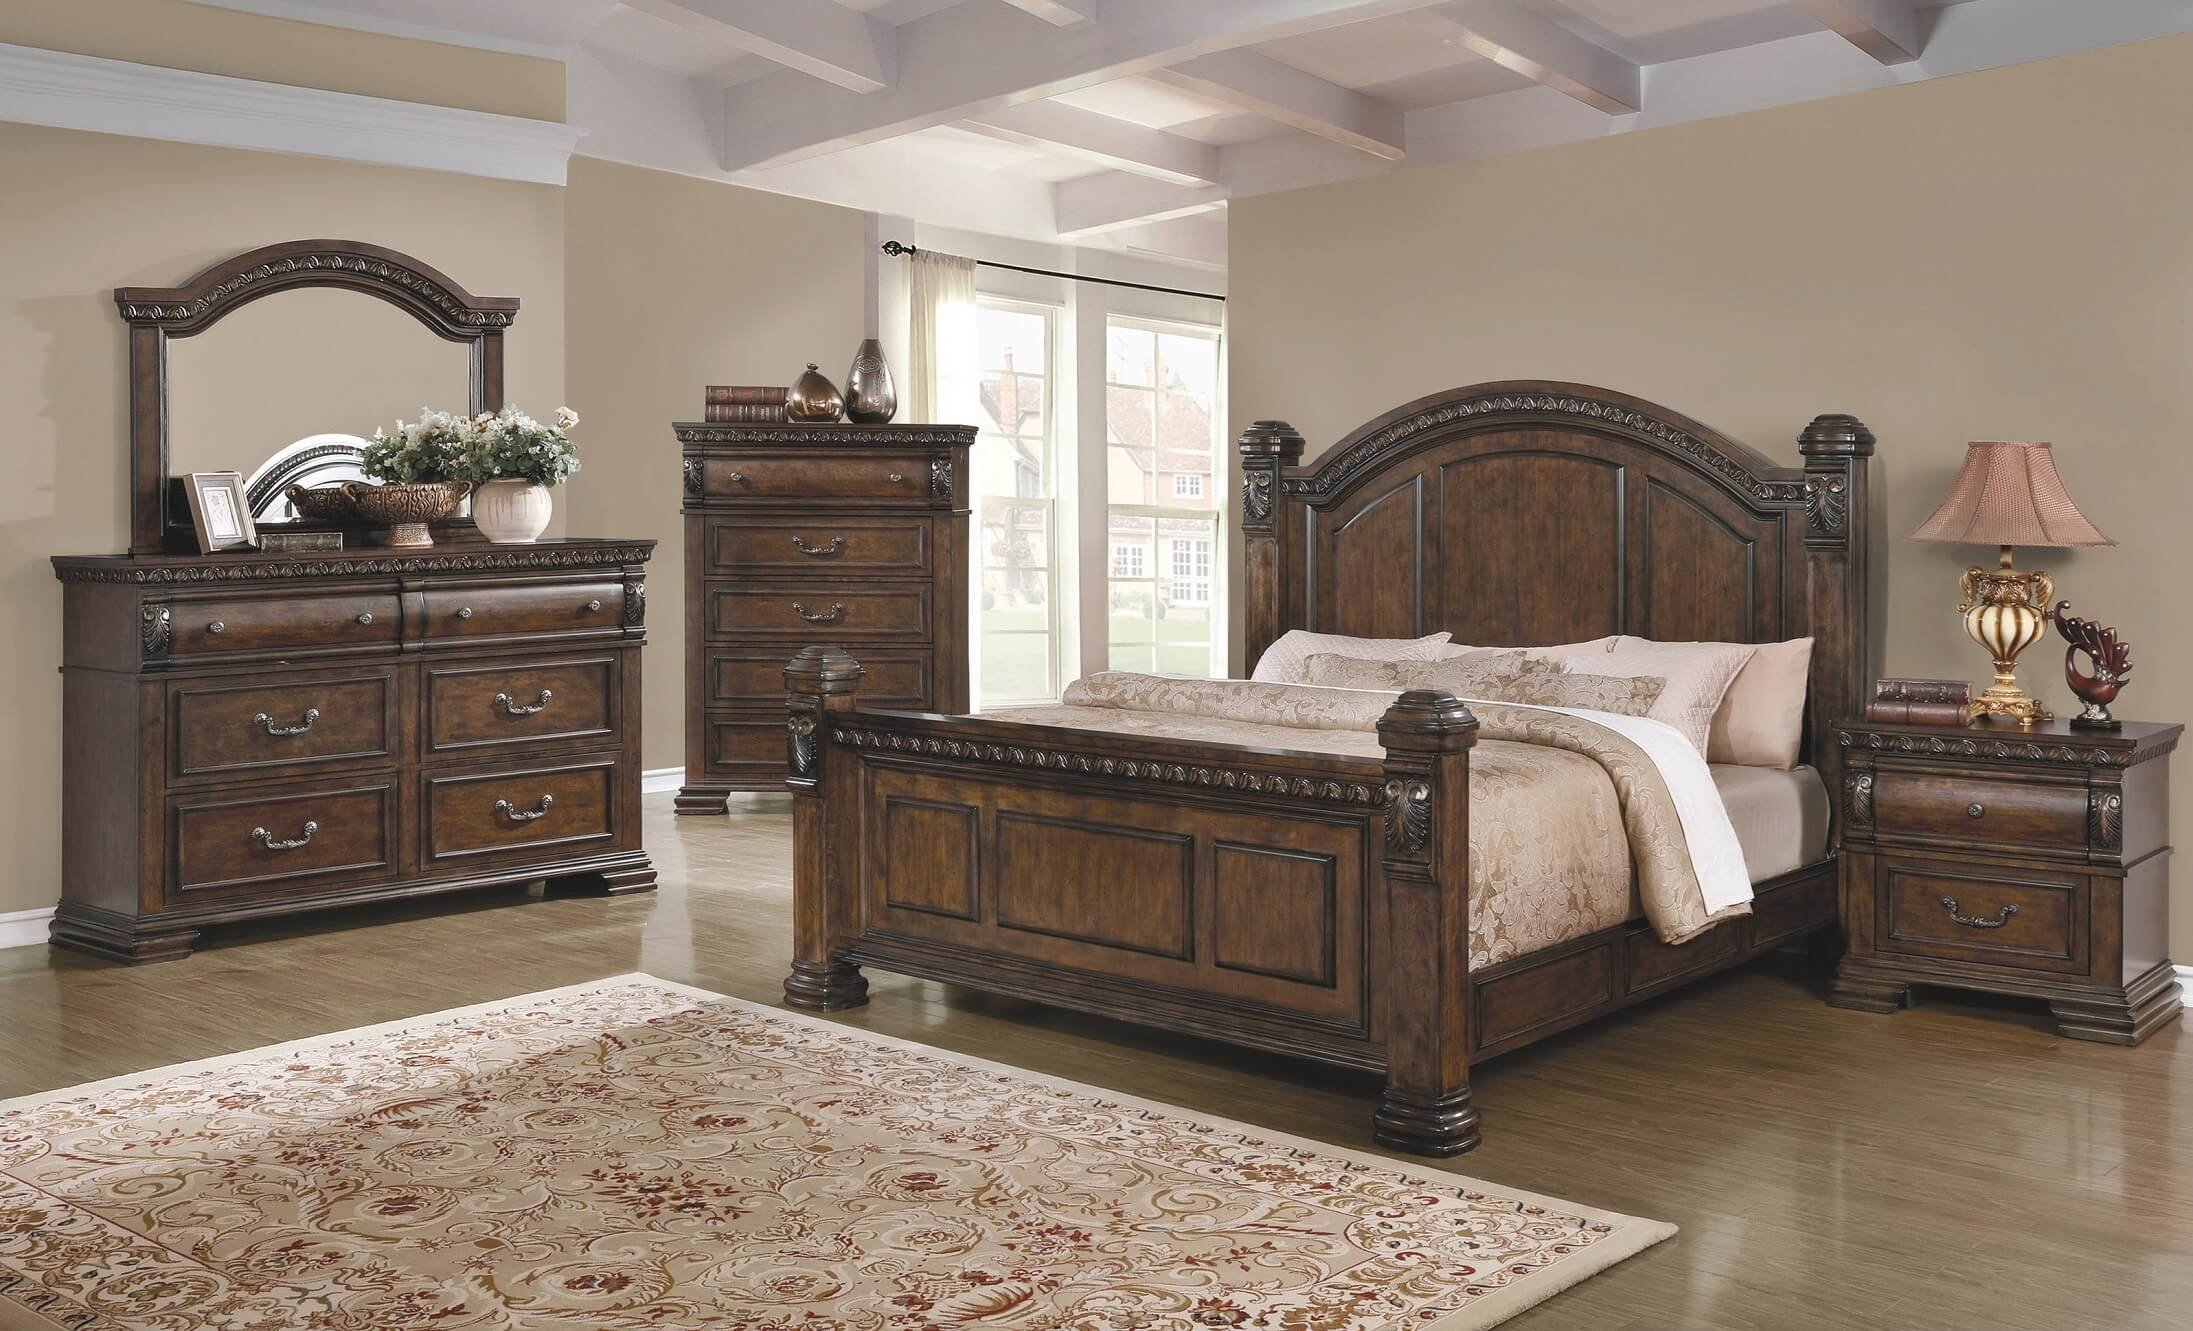 Best 4 Piece Satterfield Bedroom Set Warm Bourbon Finish Usa Warehouse Furniture With Pictures